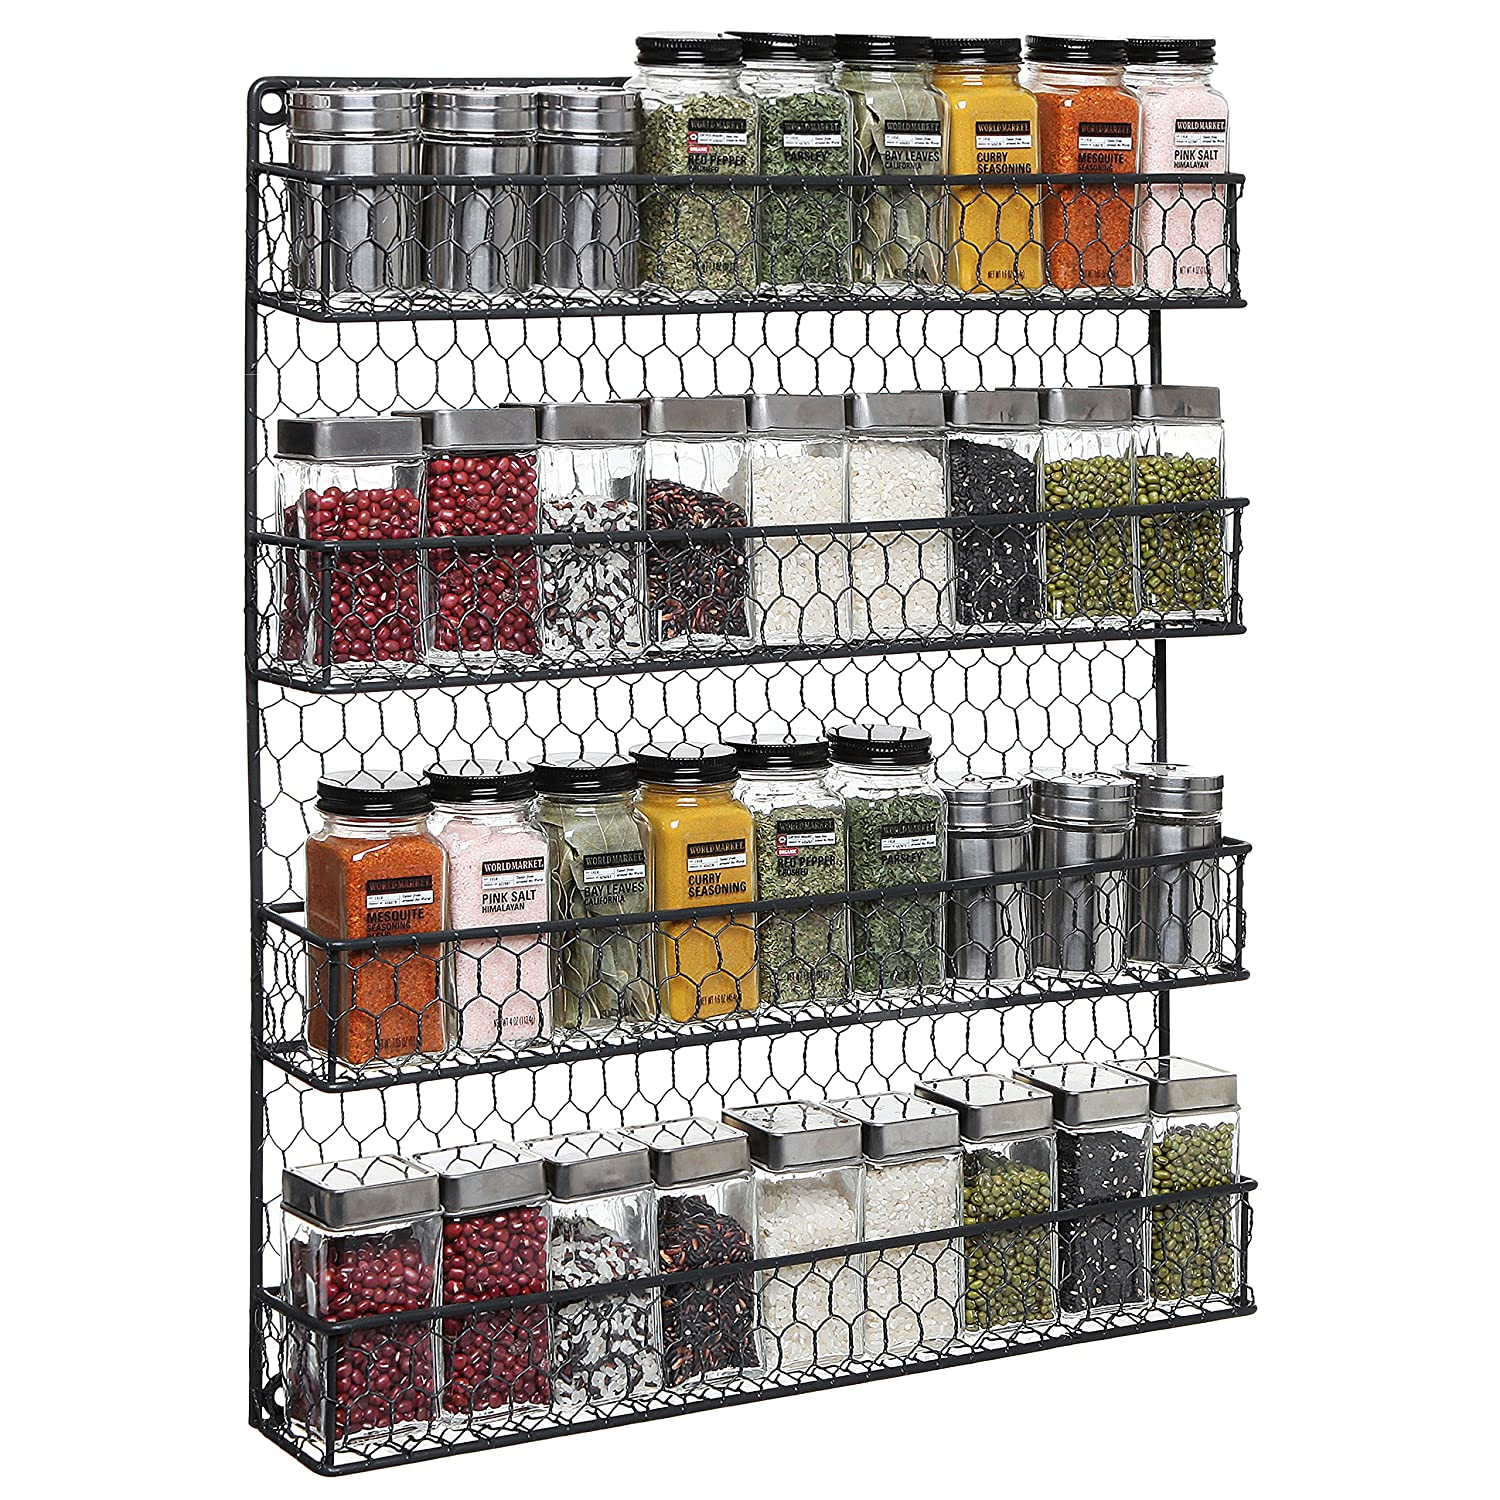 4 Tier Black Country Rustic Chicken Wire Pantry, Cabinet or